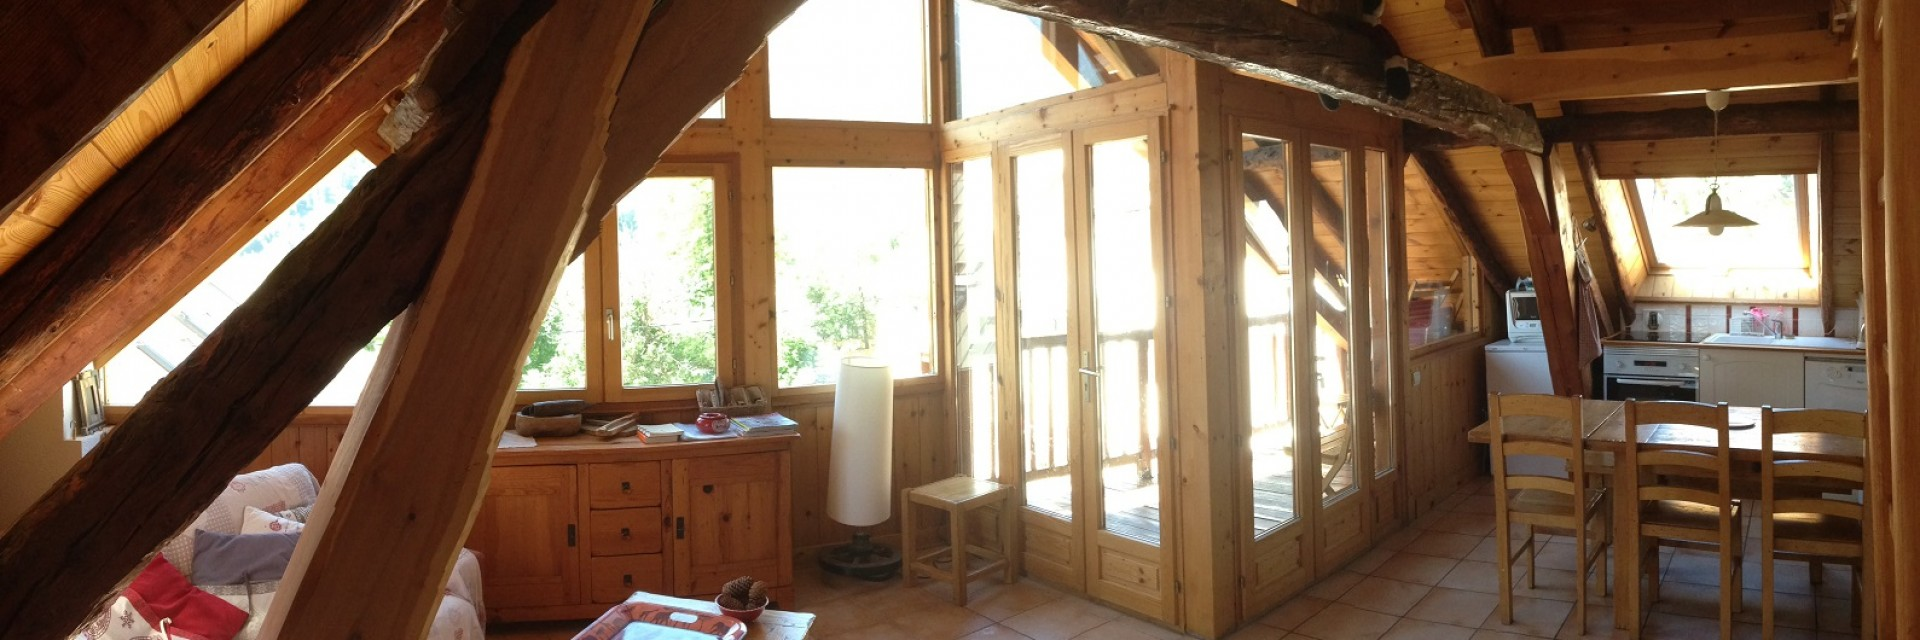 location appartement aya terrasse serre chevalier 1500 AYA alpaga blanc